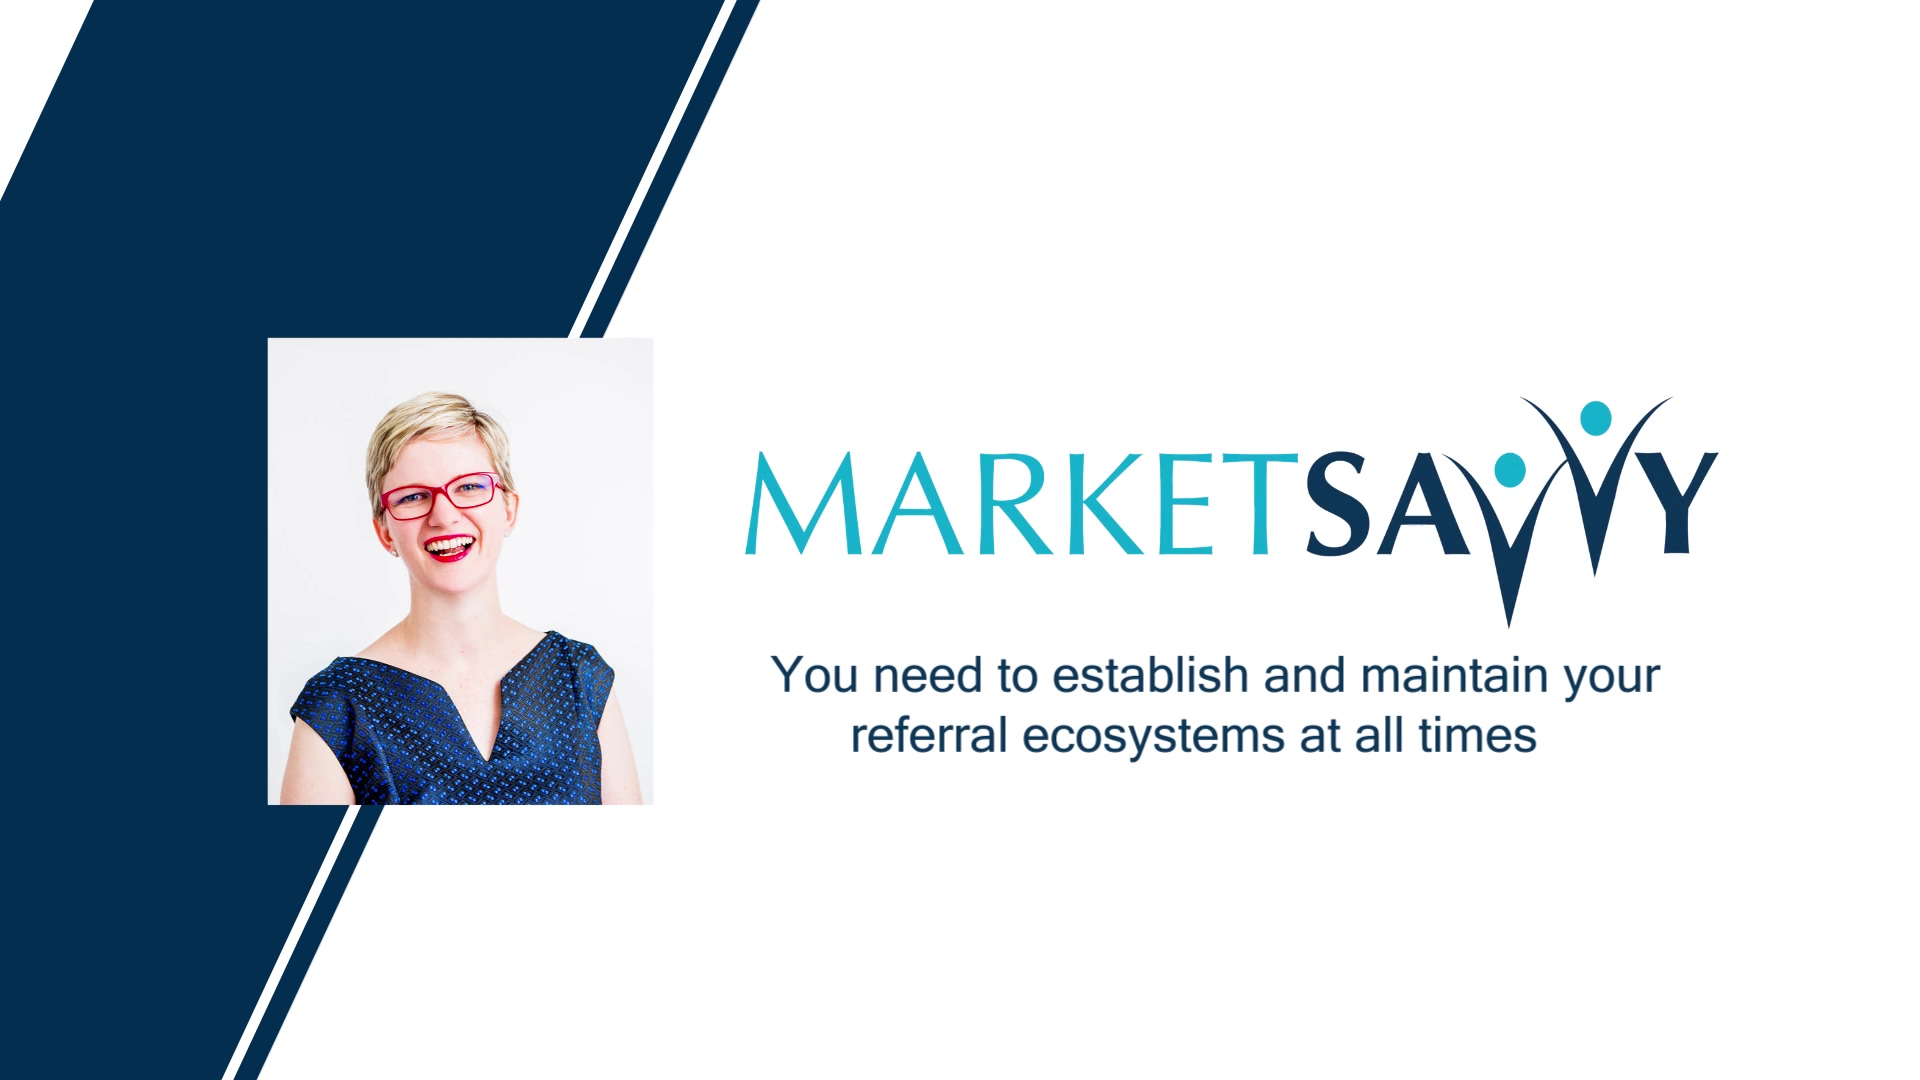 Market Savvy Program 002 - You need to establish and maintain your referral ecosystems at all times